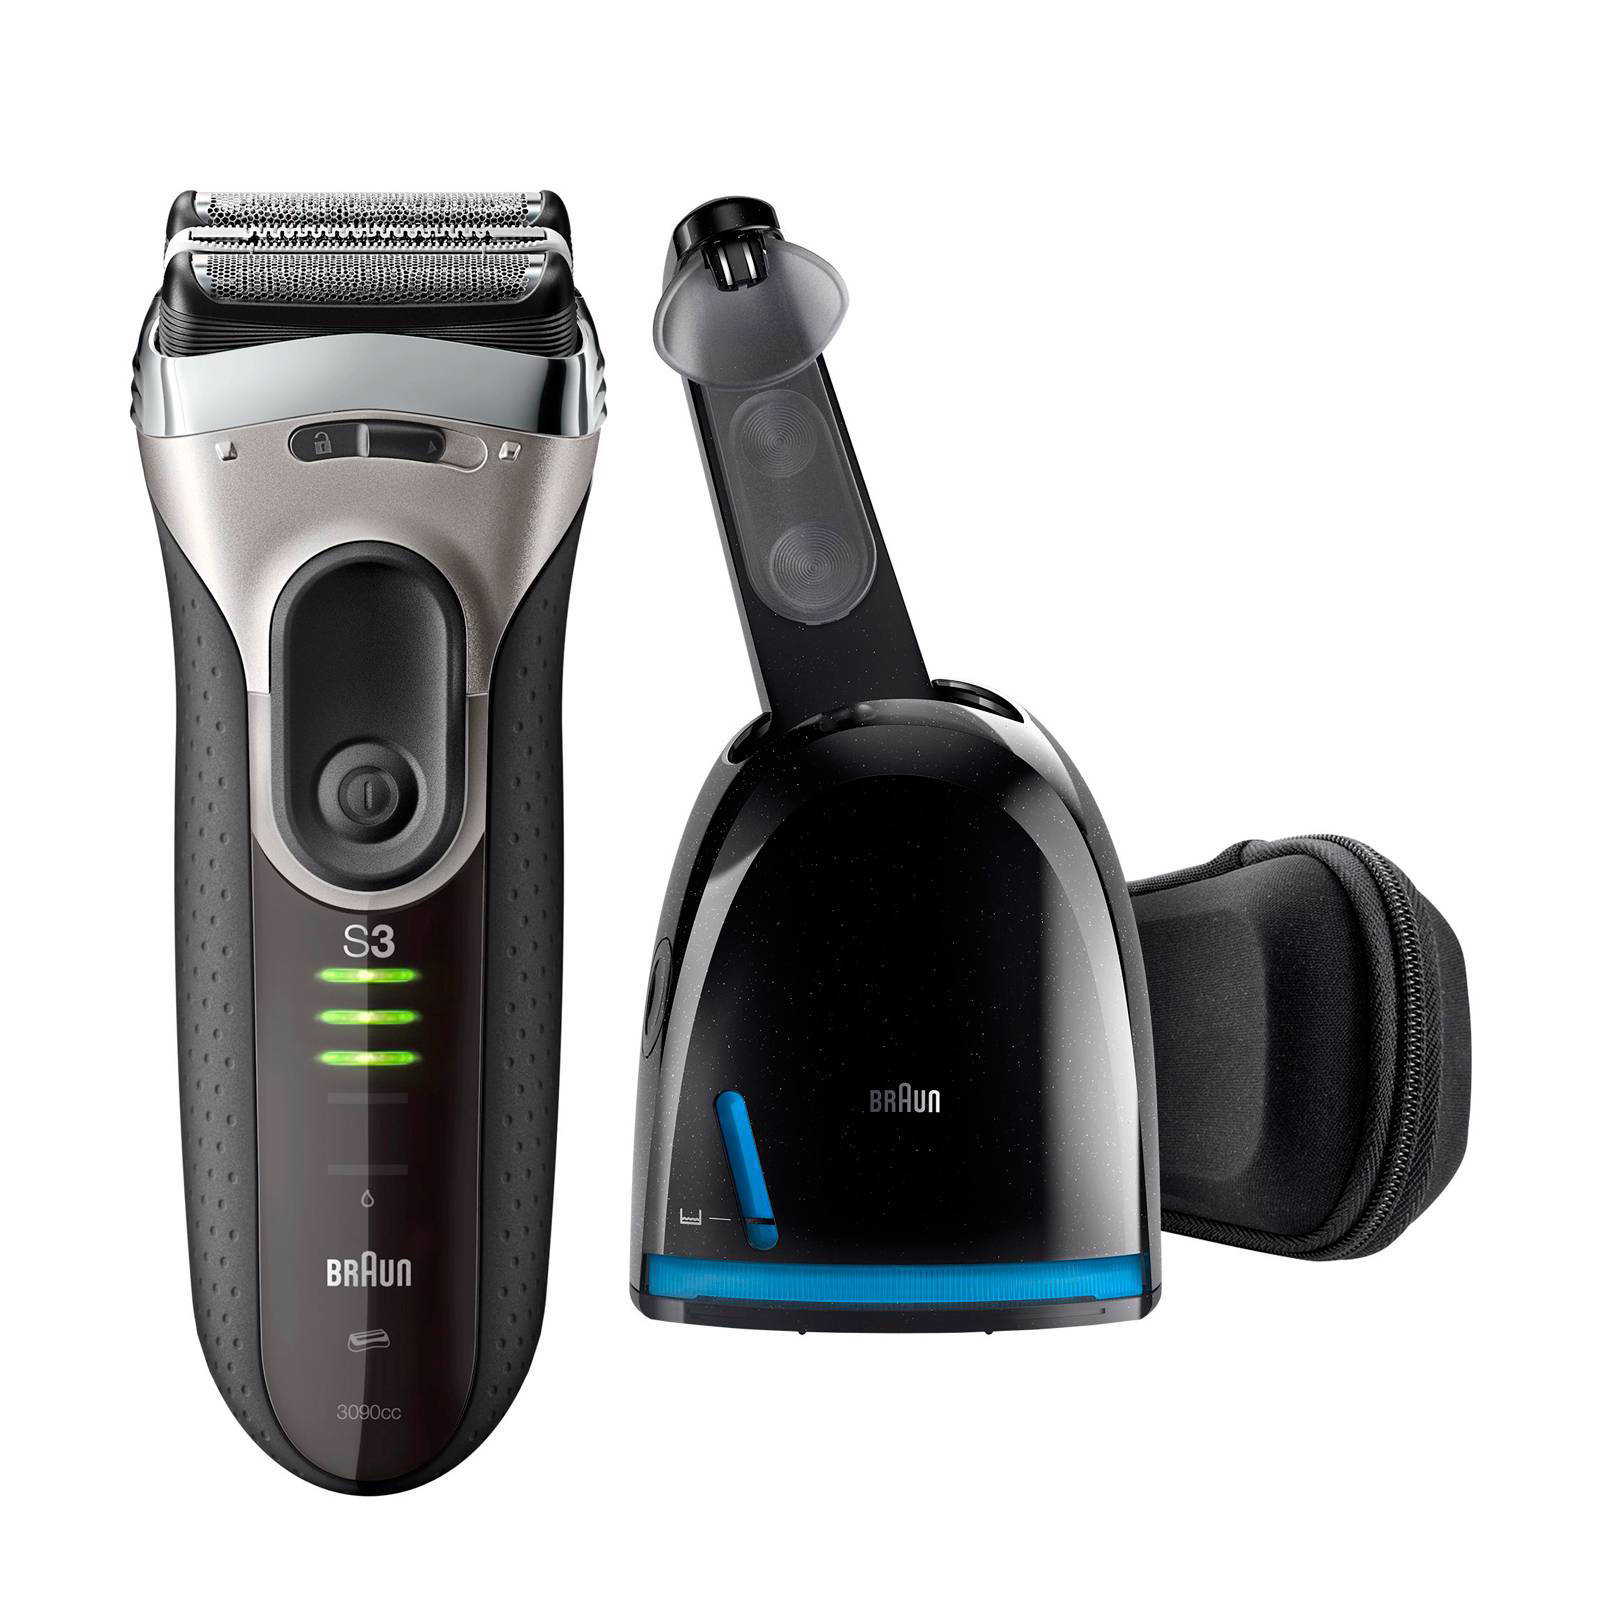 Braun Series 3090 cc scheerapparaat + Clean & Charge station